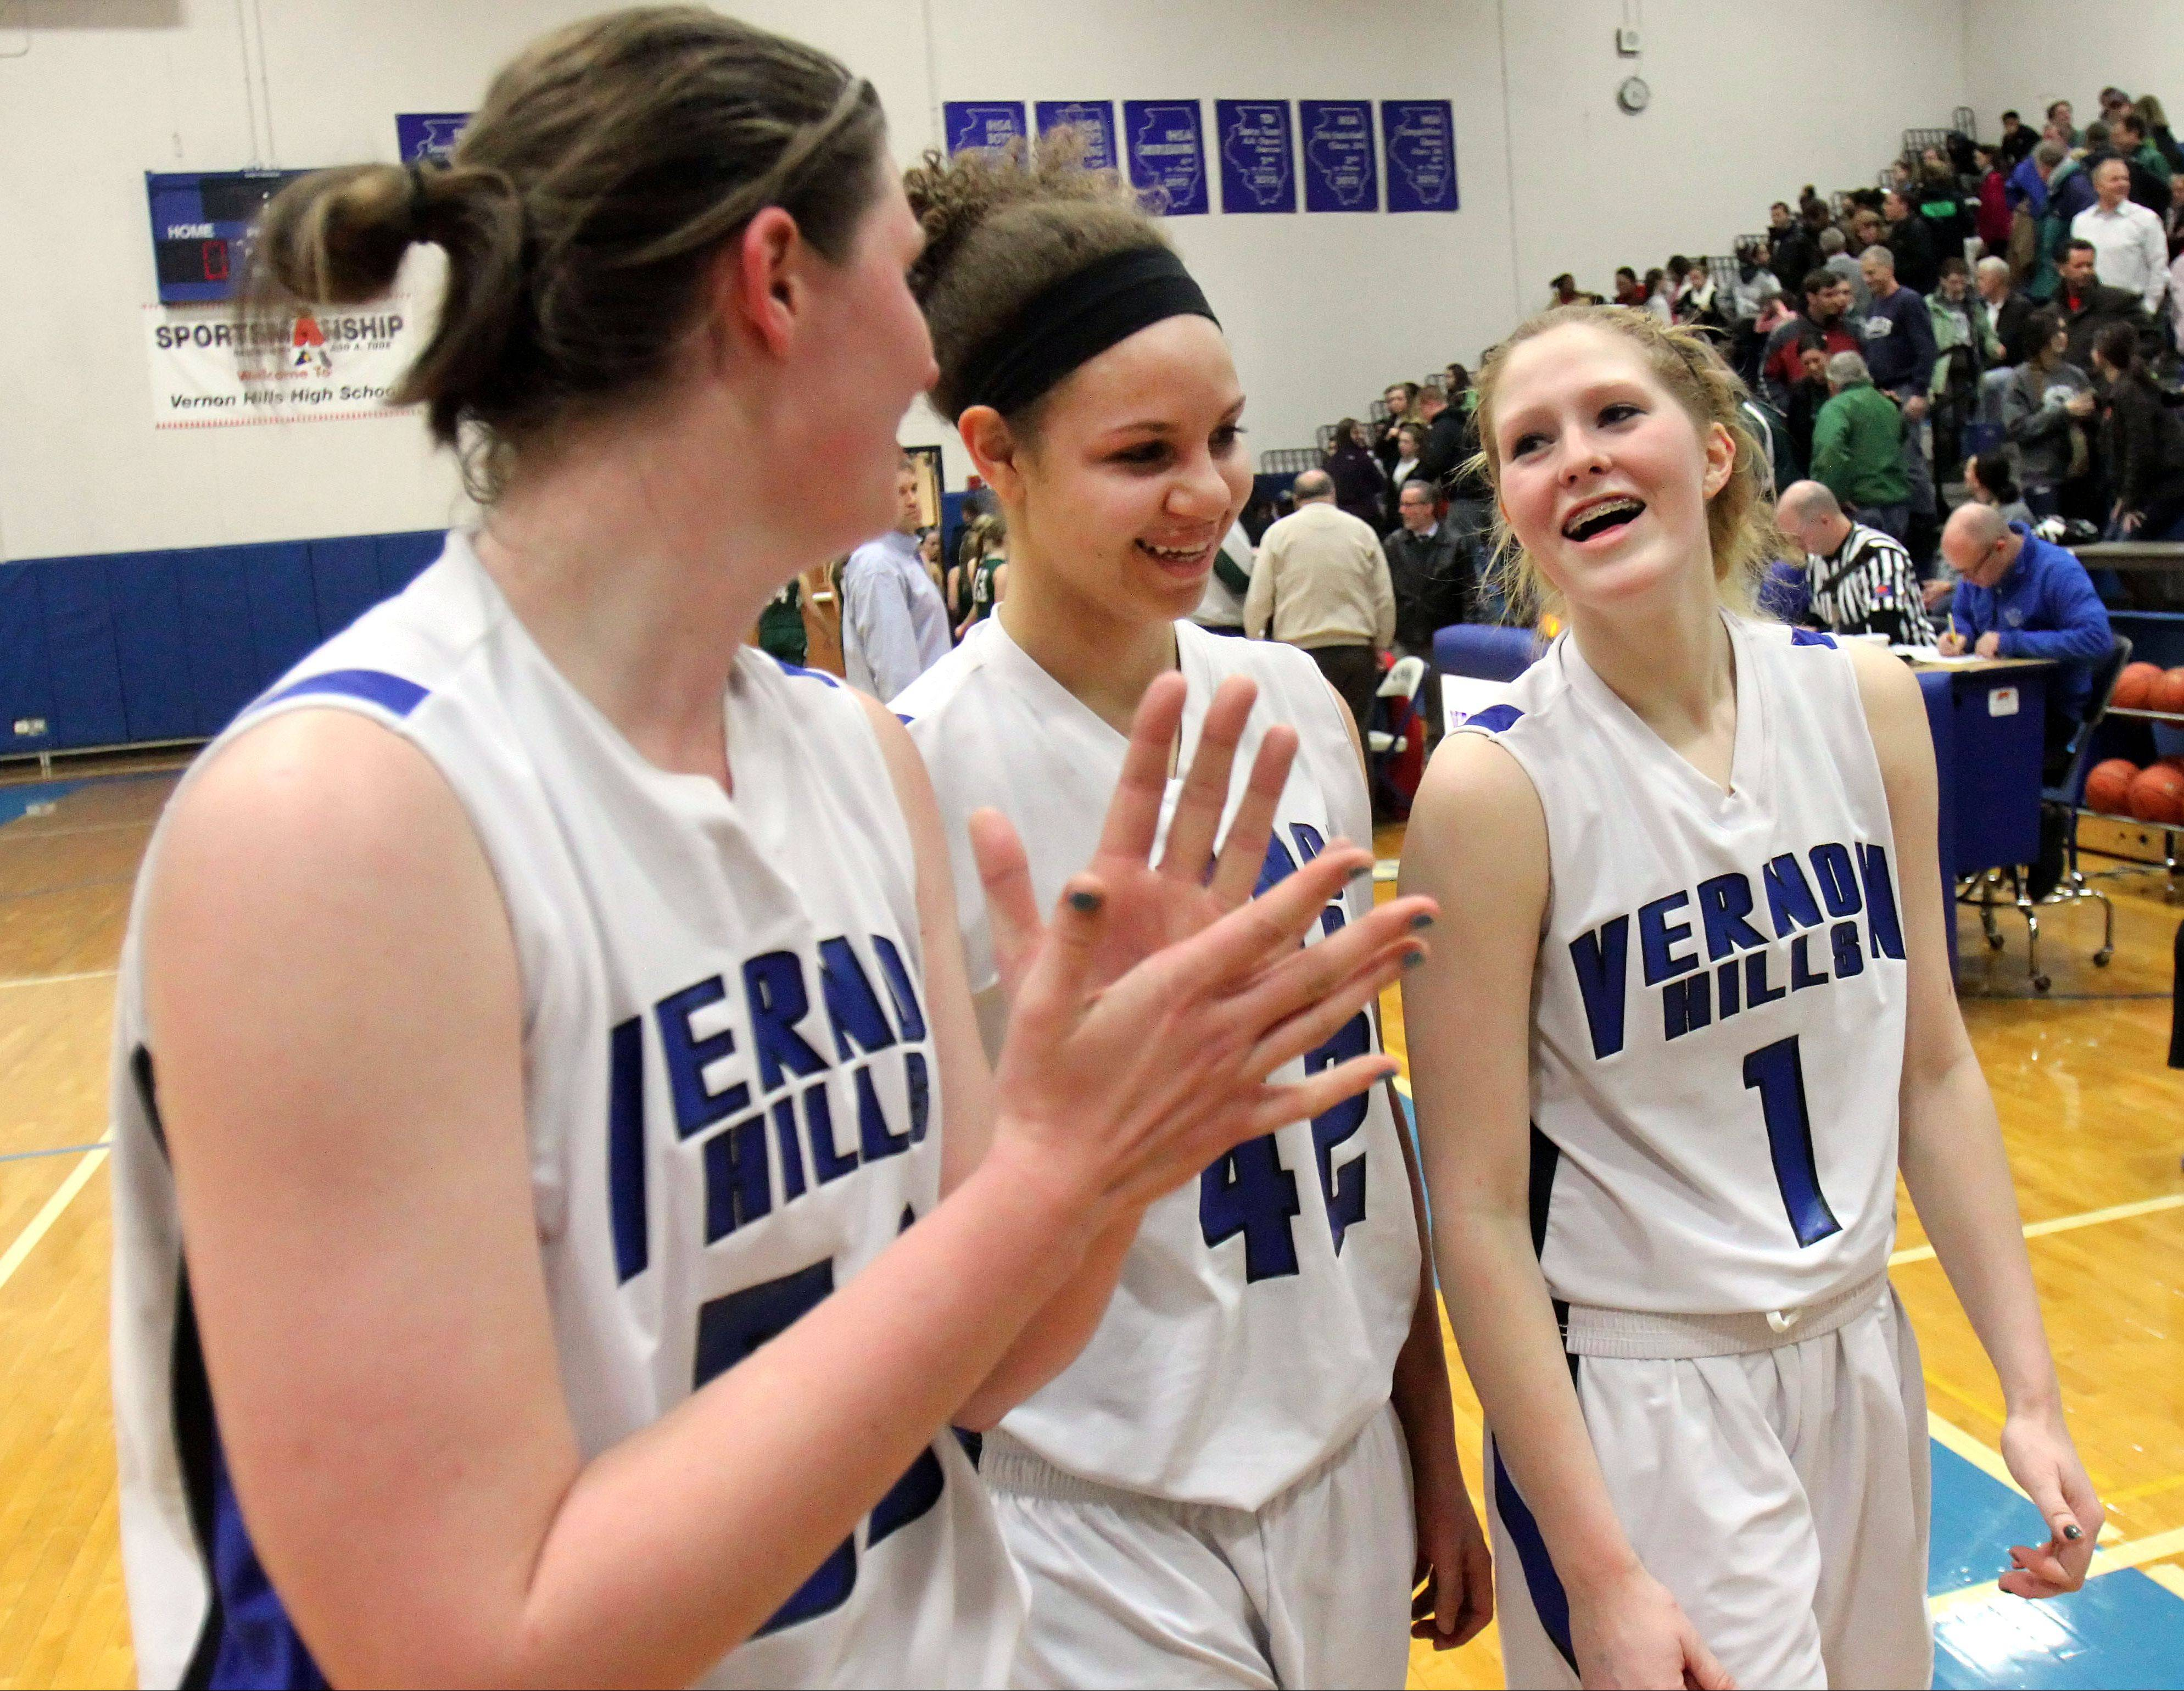 From left, Vernon Hills' Meri Bennett-Swanson, Lauren Webb and Sydney Smith are all smiles after beating Grayslake Central in Class 3A sectional semifinal play at Vernon Hills on Tuesday.